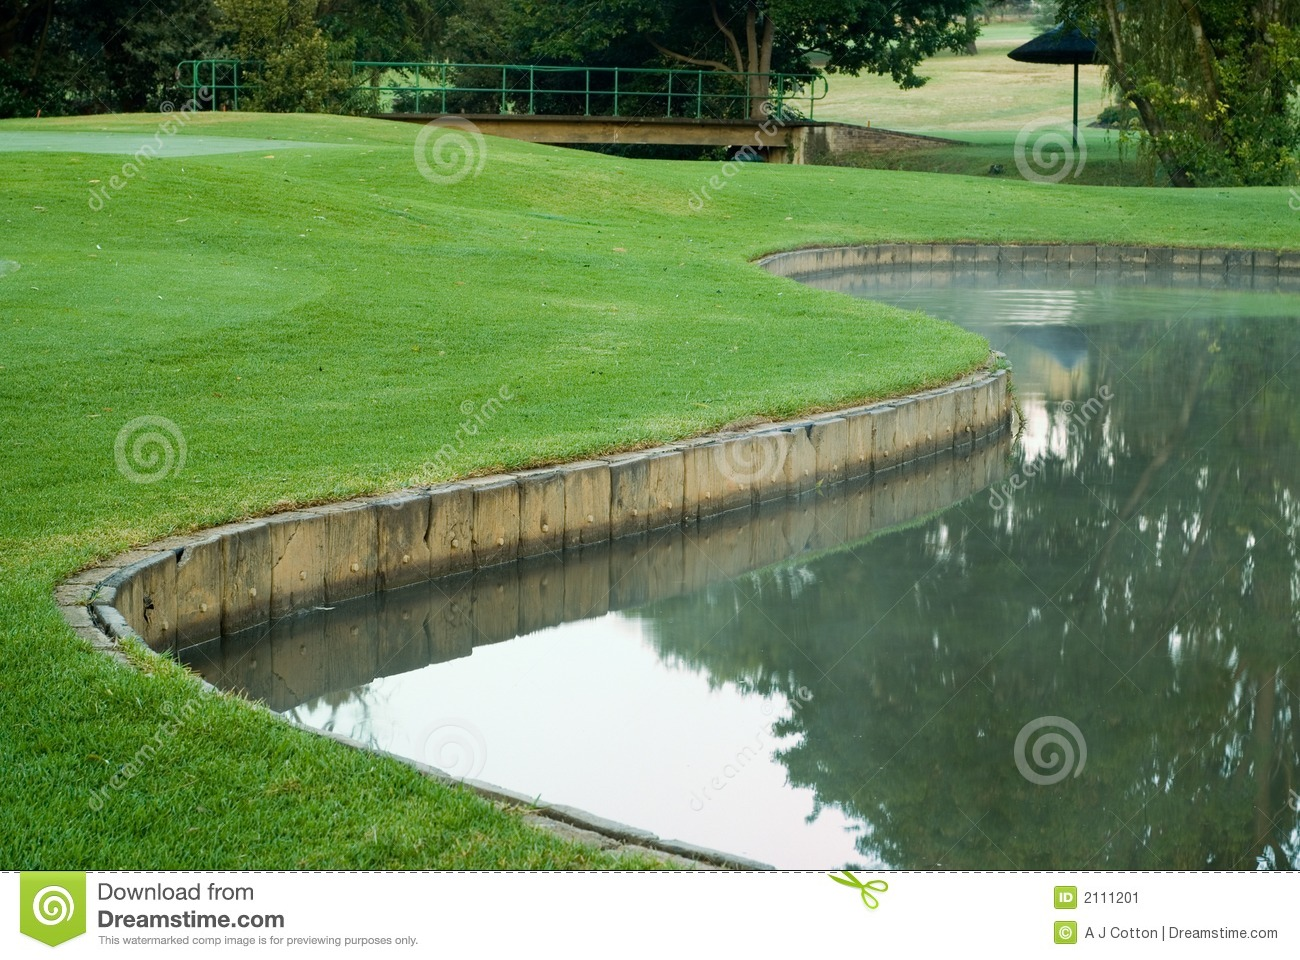 Golf water hazard clipart free.